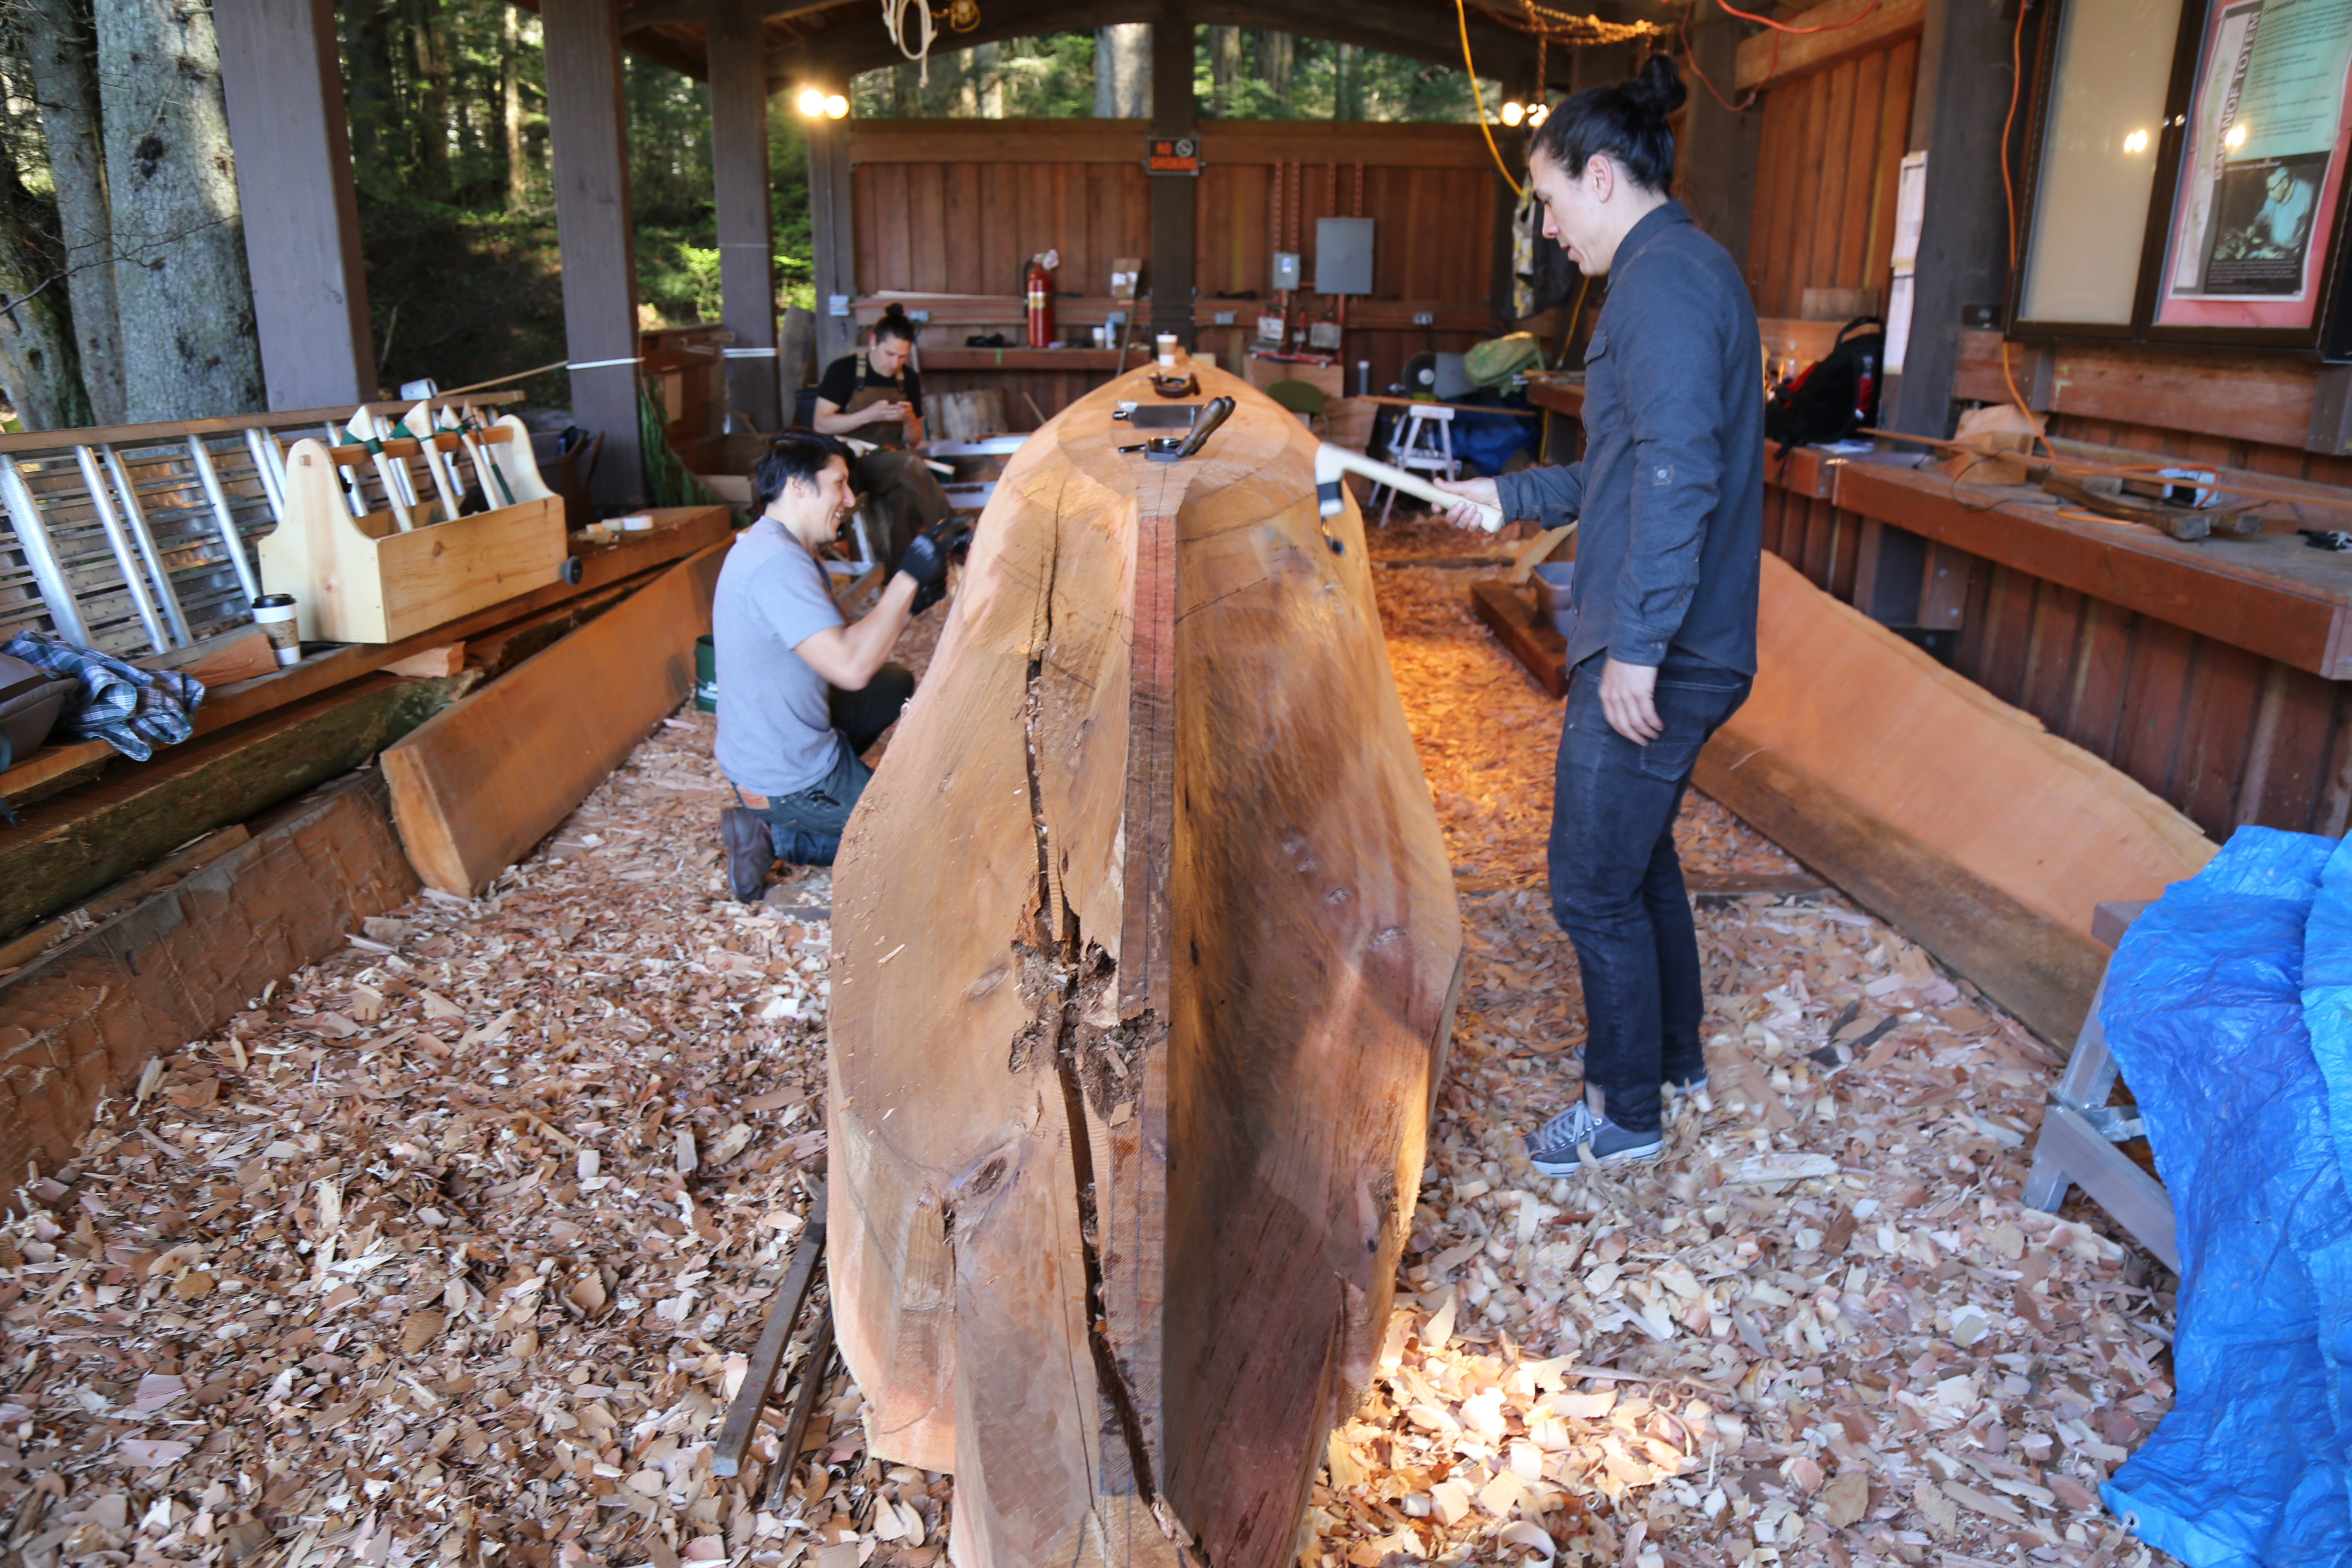 Carvers stand around red cedar log during carving process.